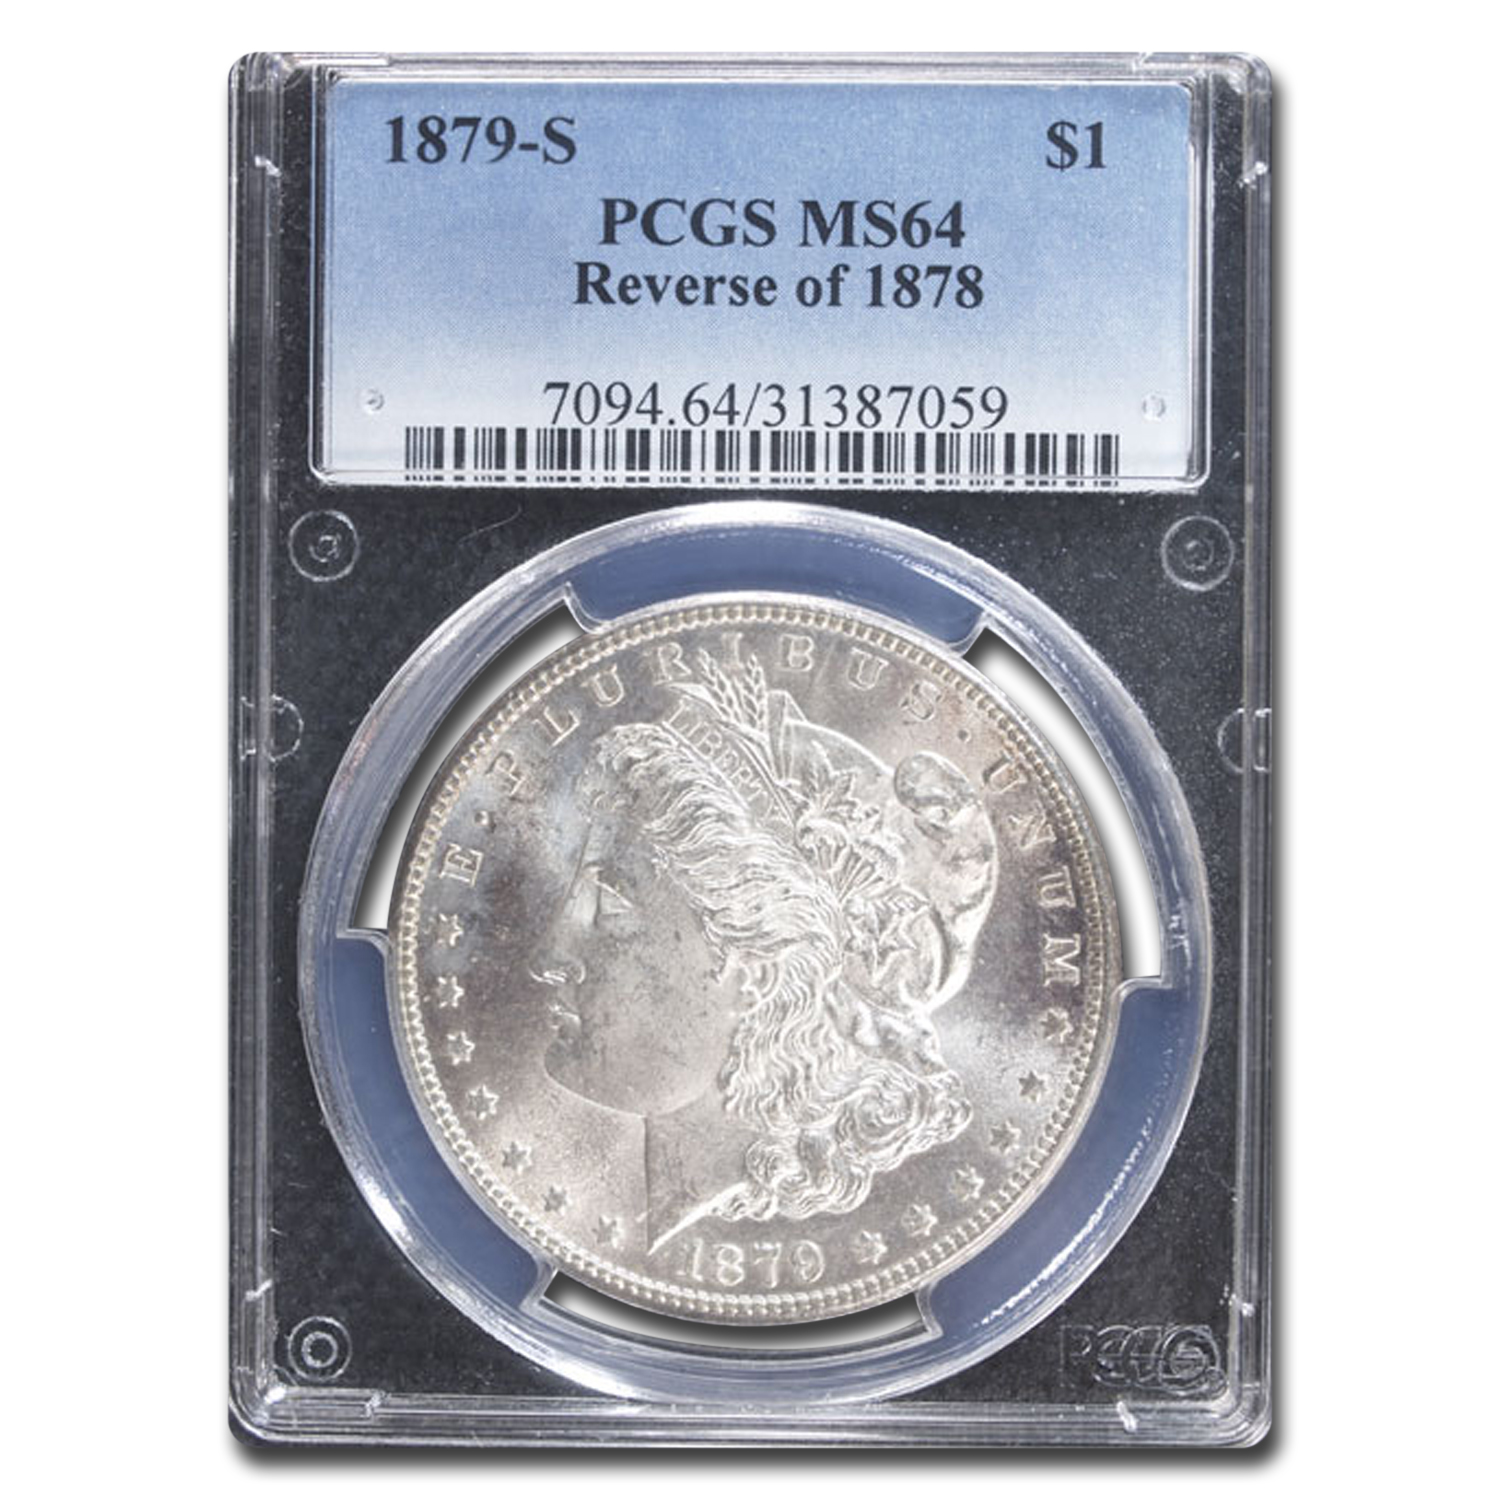 1879-S Morgan Dollar Rev of 78 MS-64 PCGS